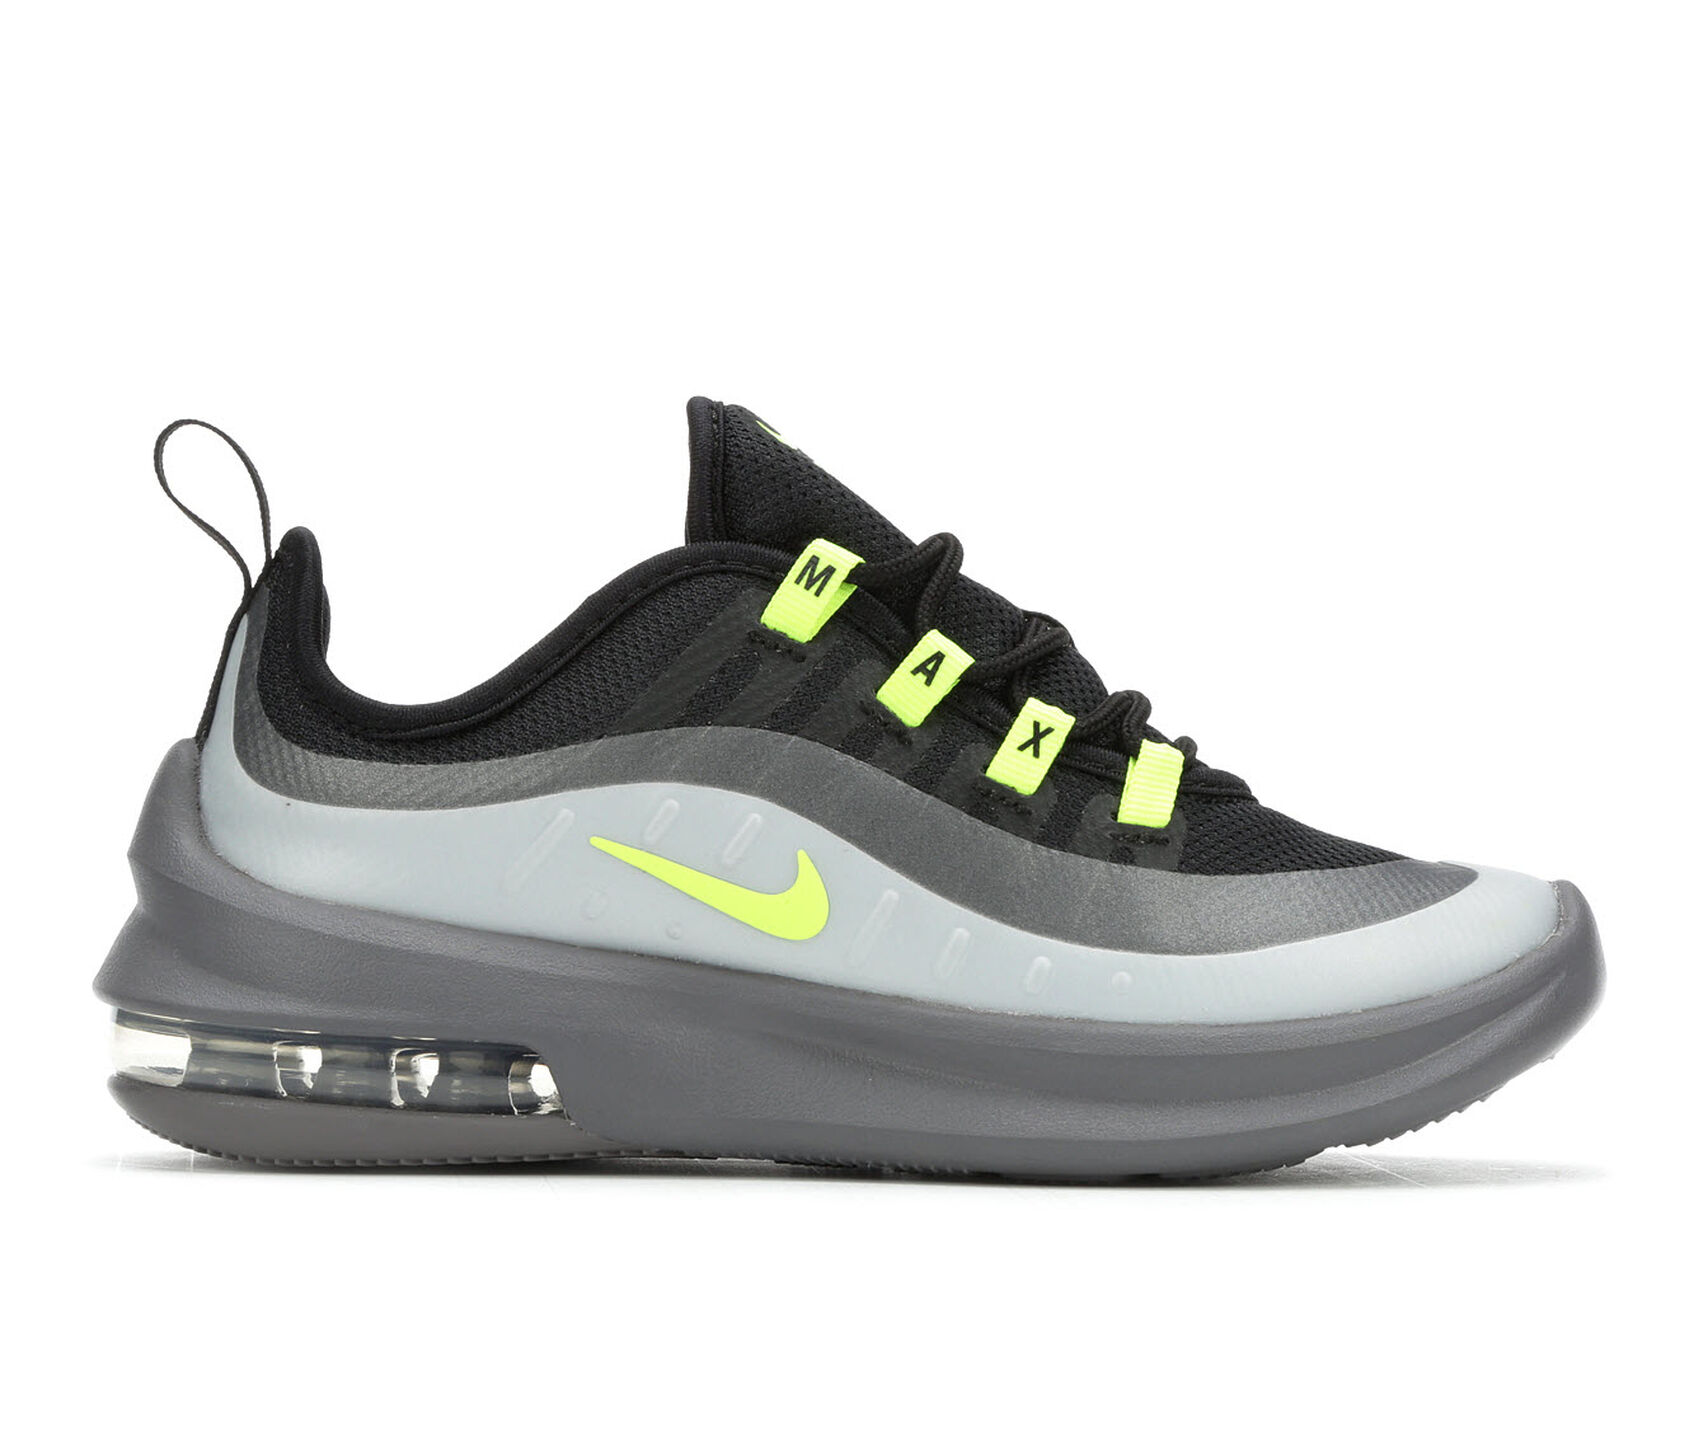 Boys' Nike Little Kid Air Max Axis Running Shoes | Shoe Carnival